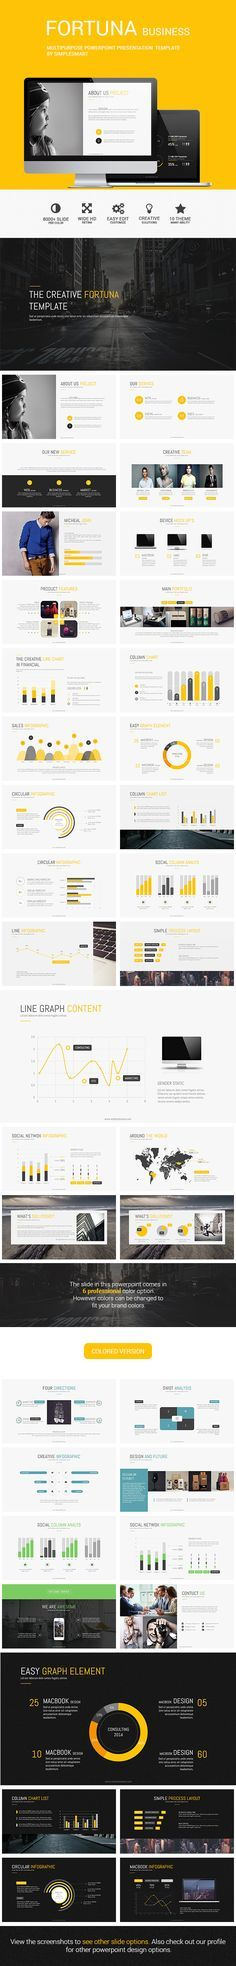 Phienix Powerpoint Presentation Powerpoint presentation - business presentation template